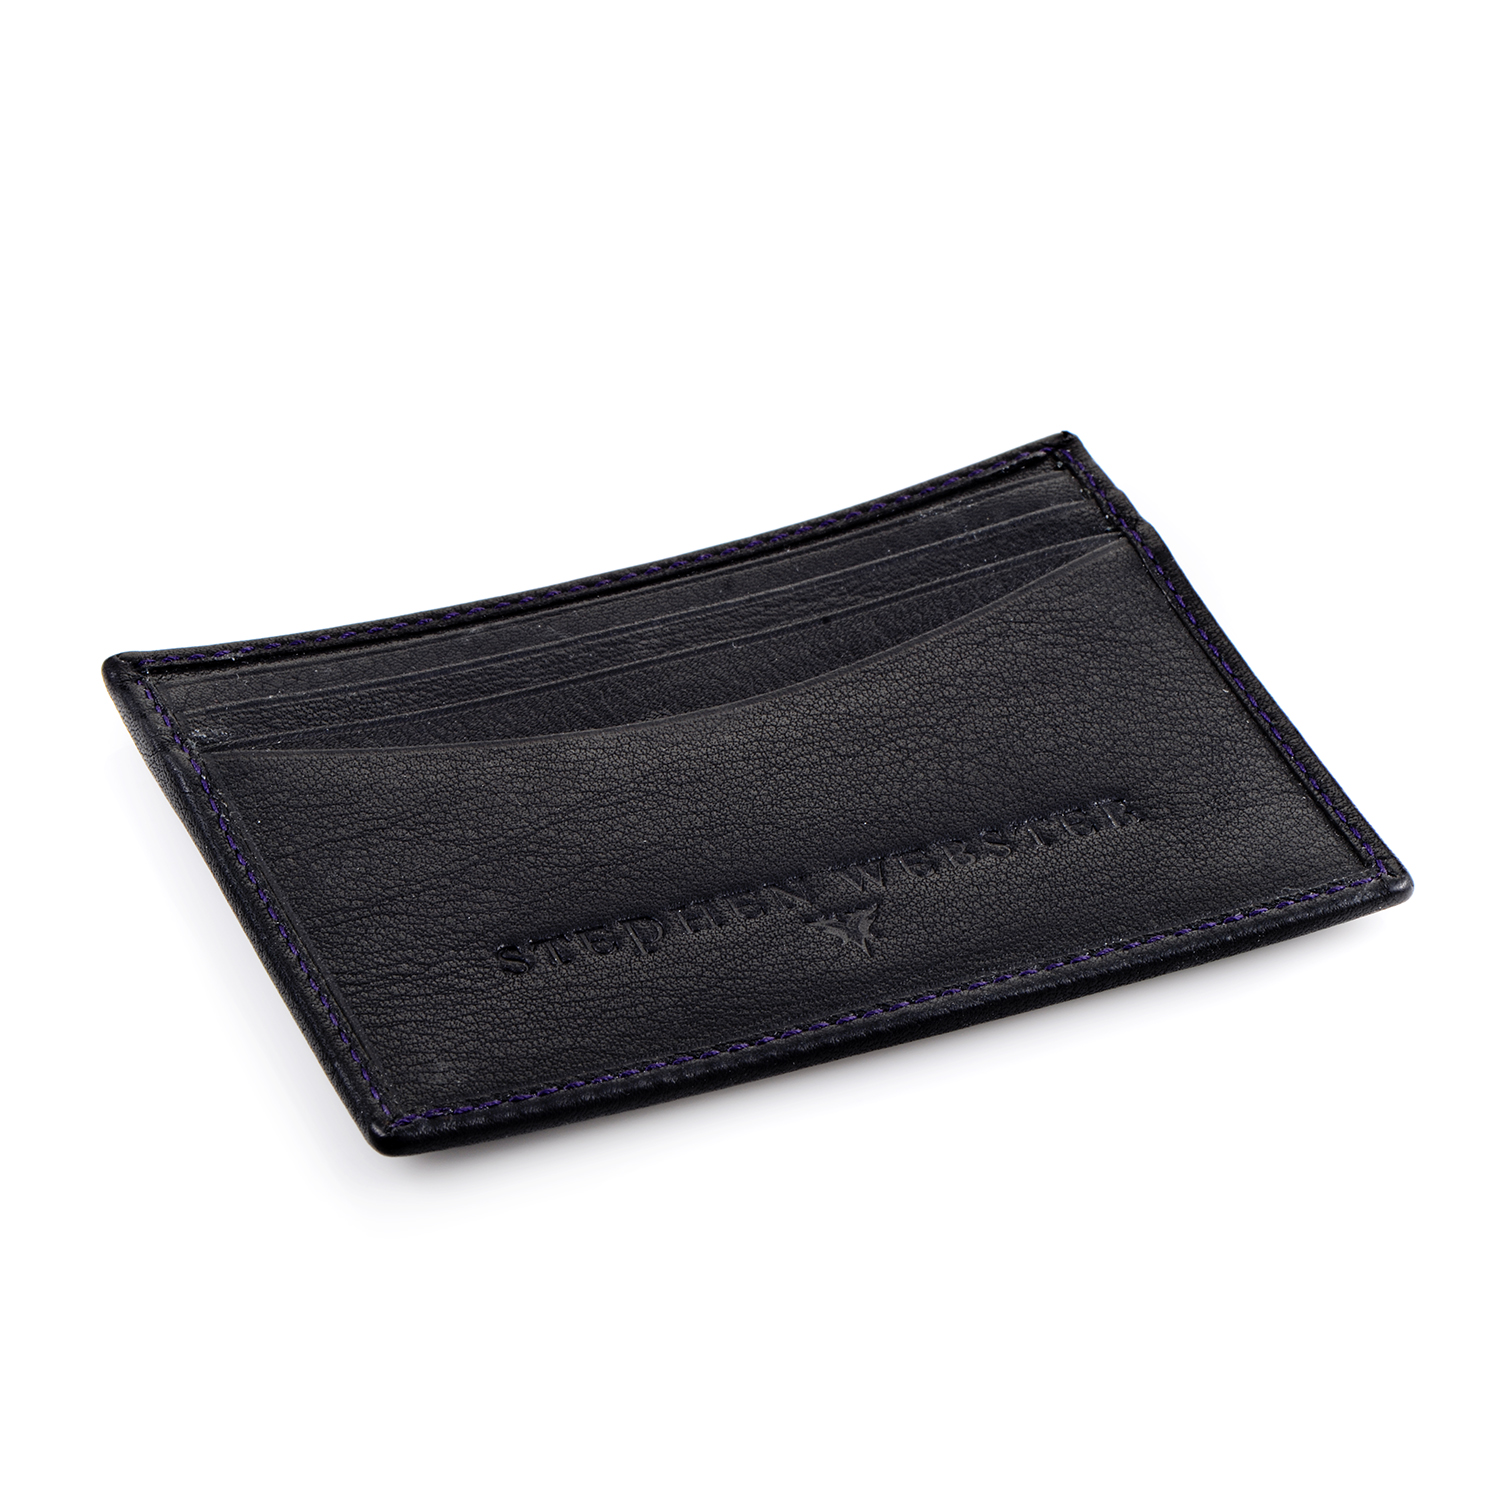 Calfskin Leather Cardholder 3013924